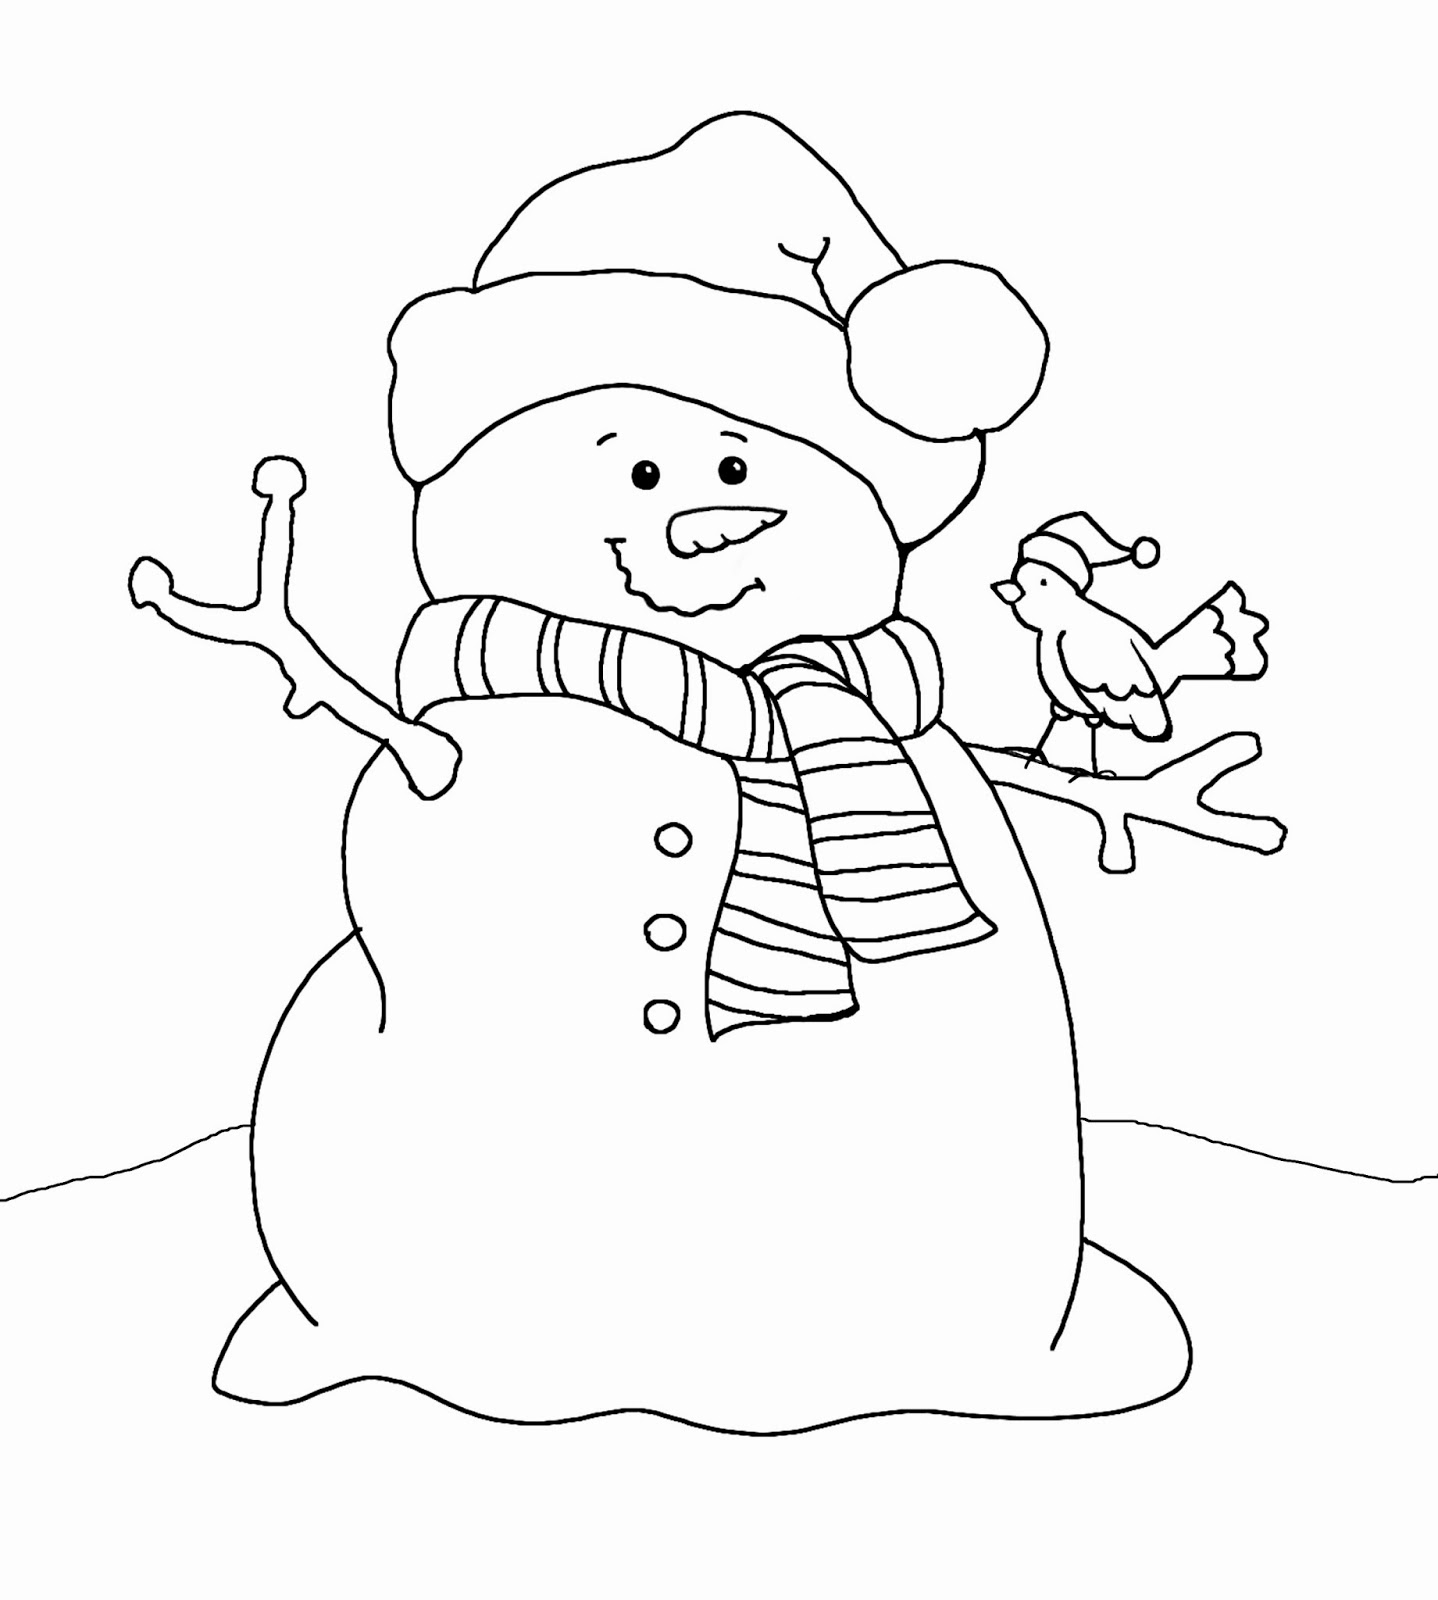 Free Coloring Pages Of The Snowman Is White Snowman Printable Coloring Pages